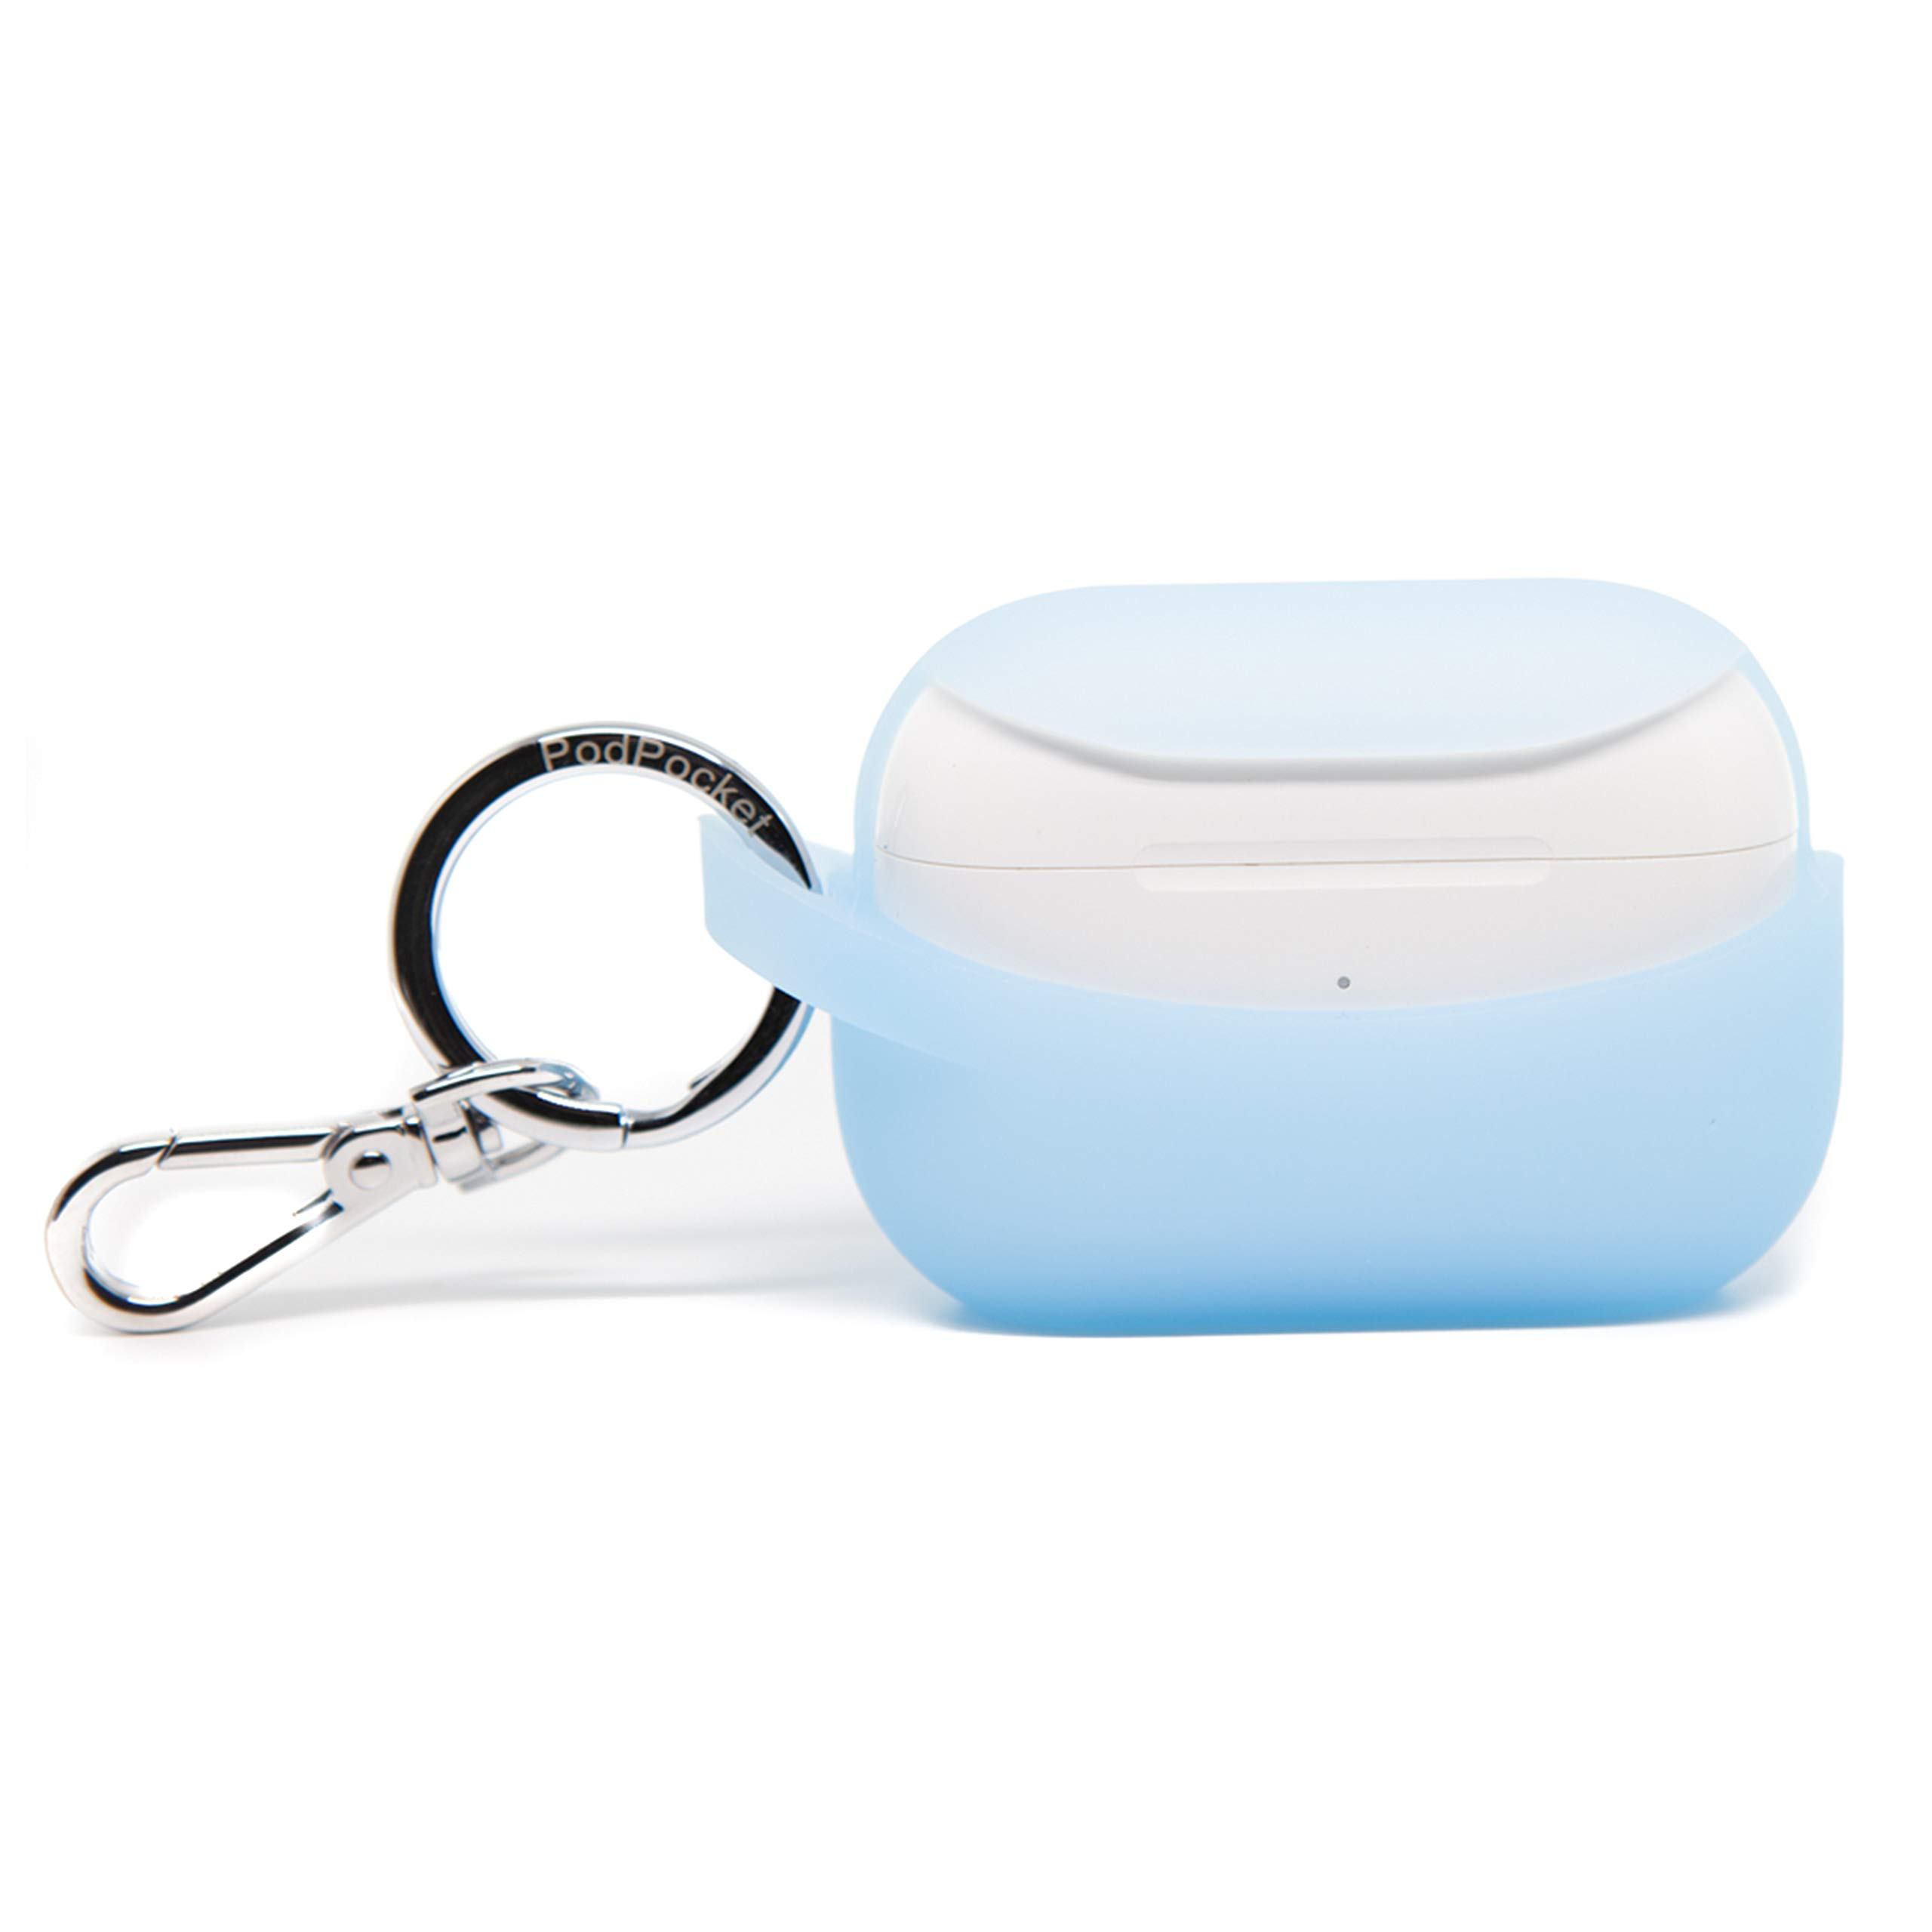 PodPocket Secure Pro AirPod Storage Case with Wireless Charging and Impact Protection Powder Blue